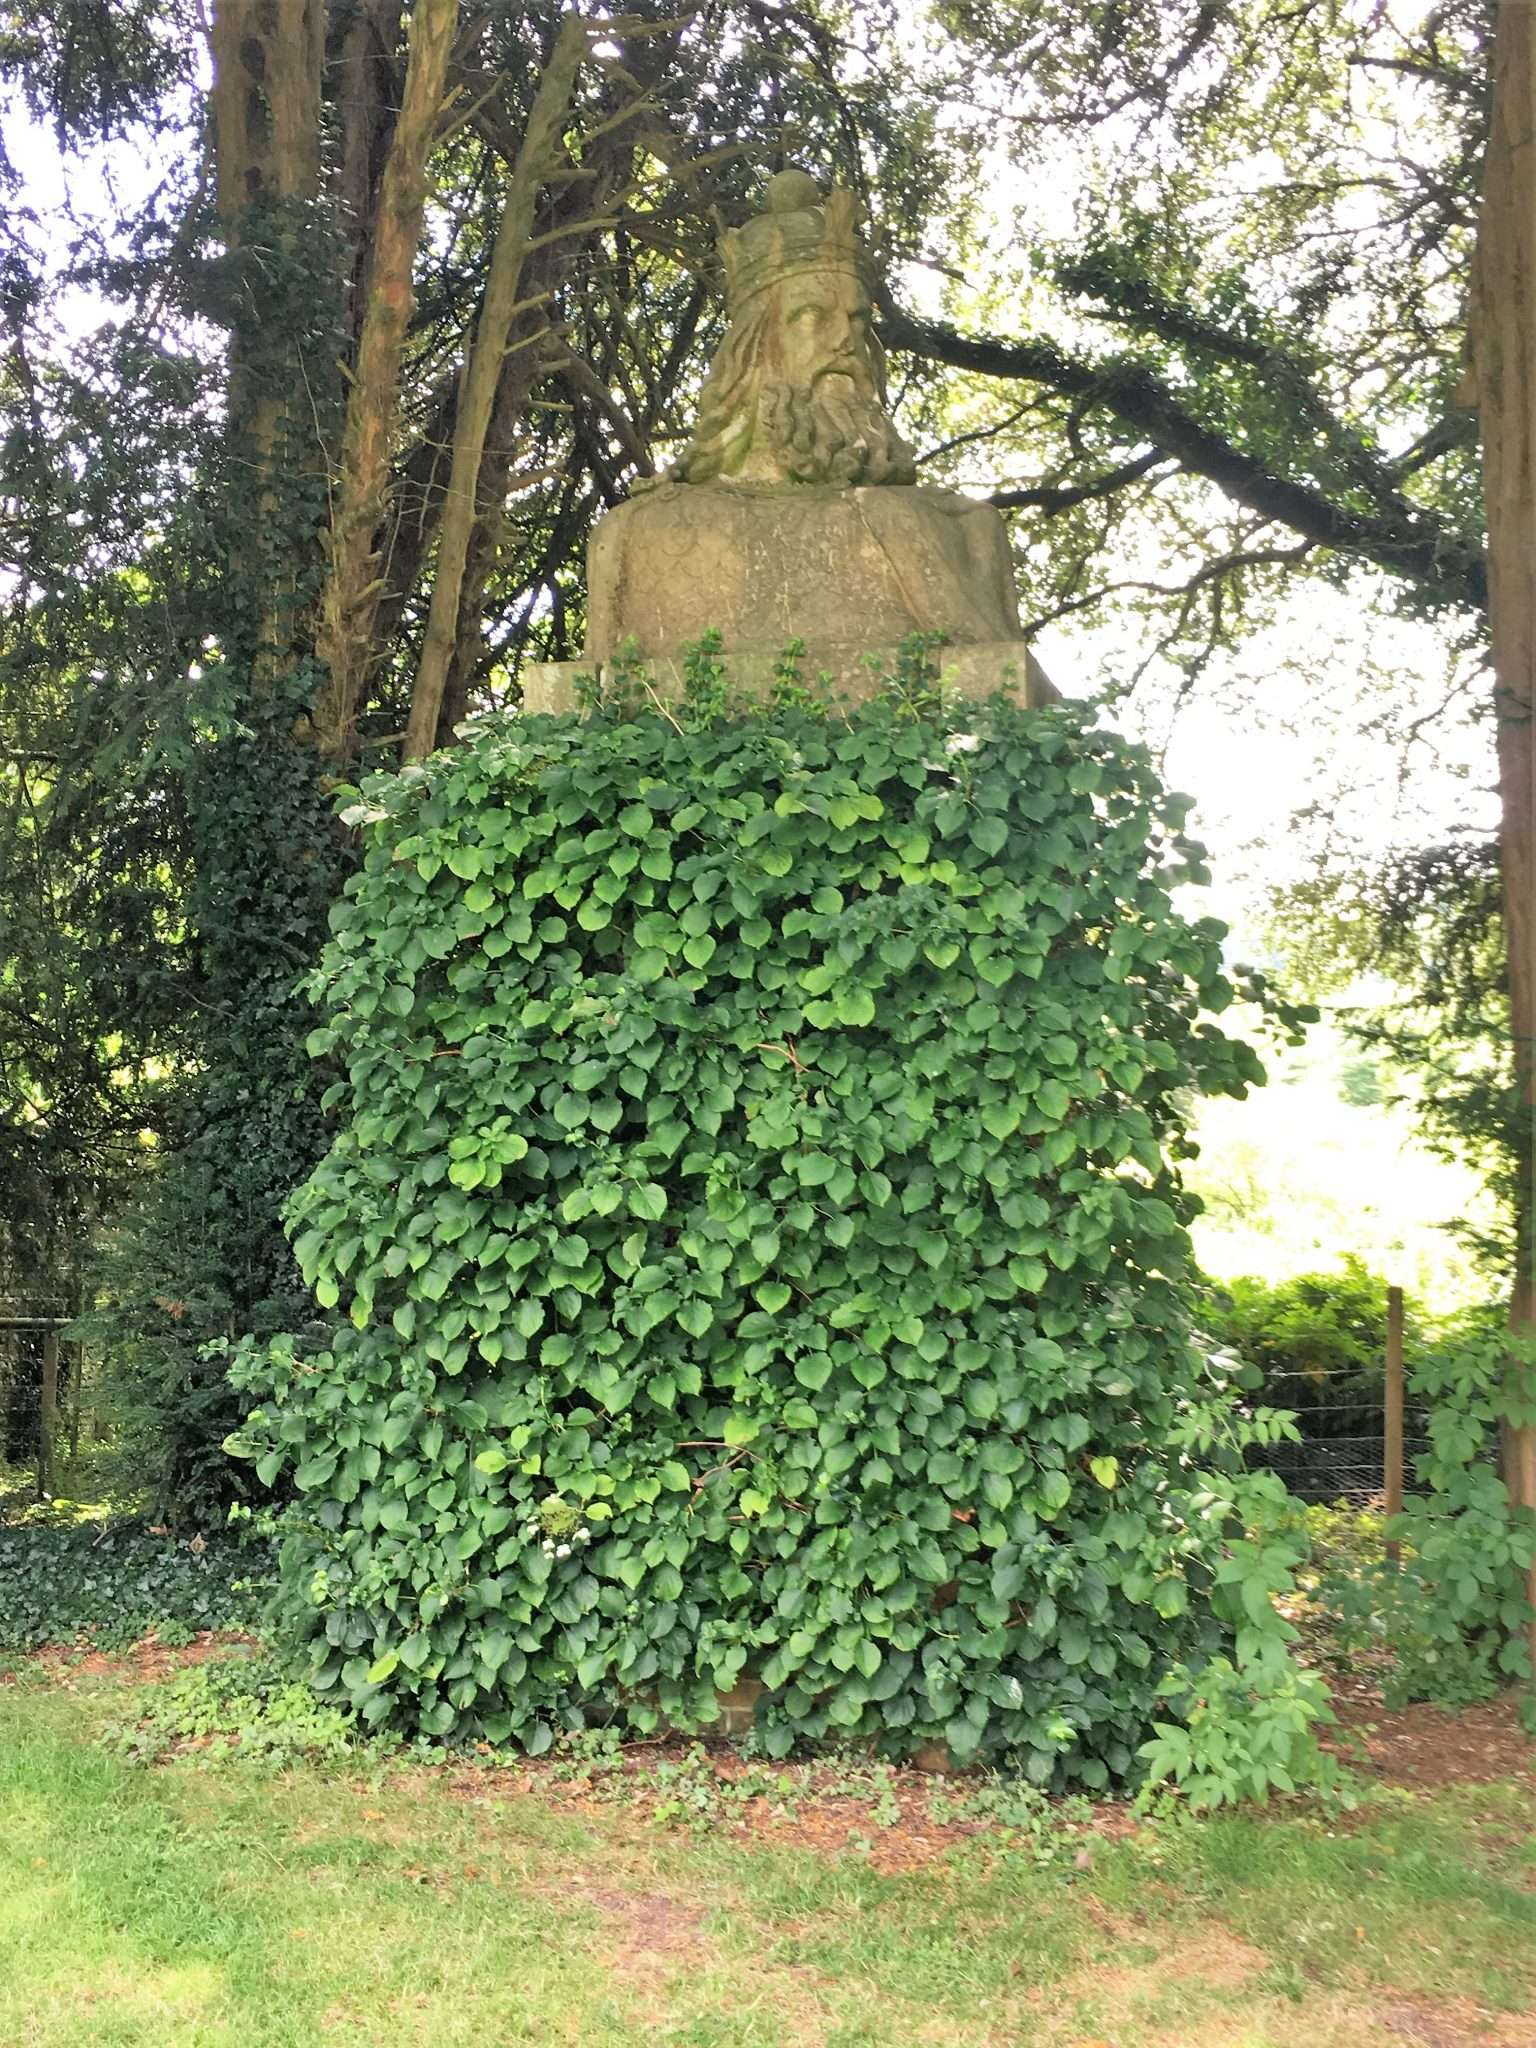 An ivy covered statue of a man